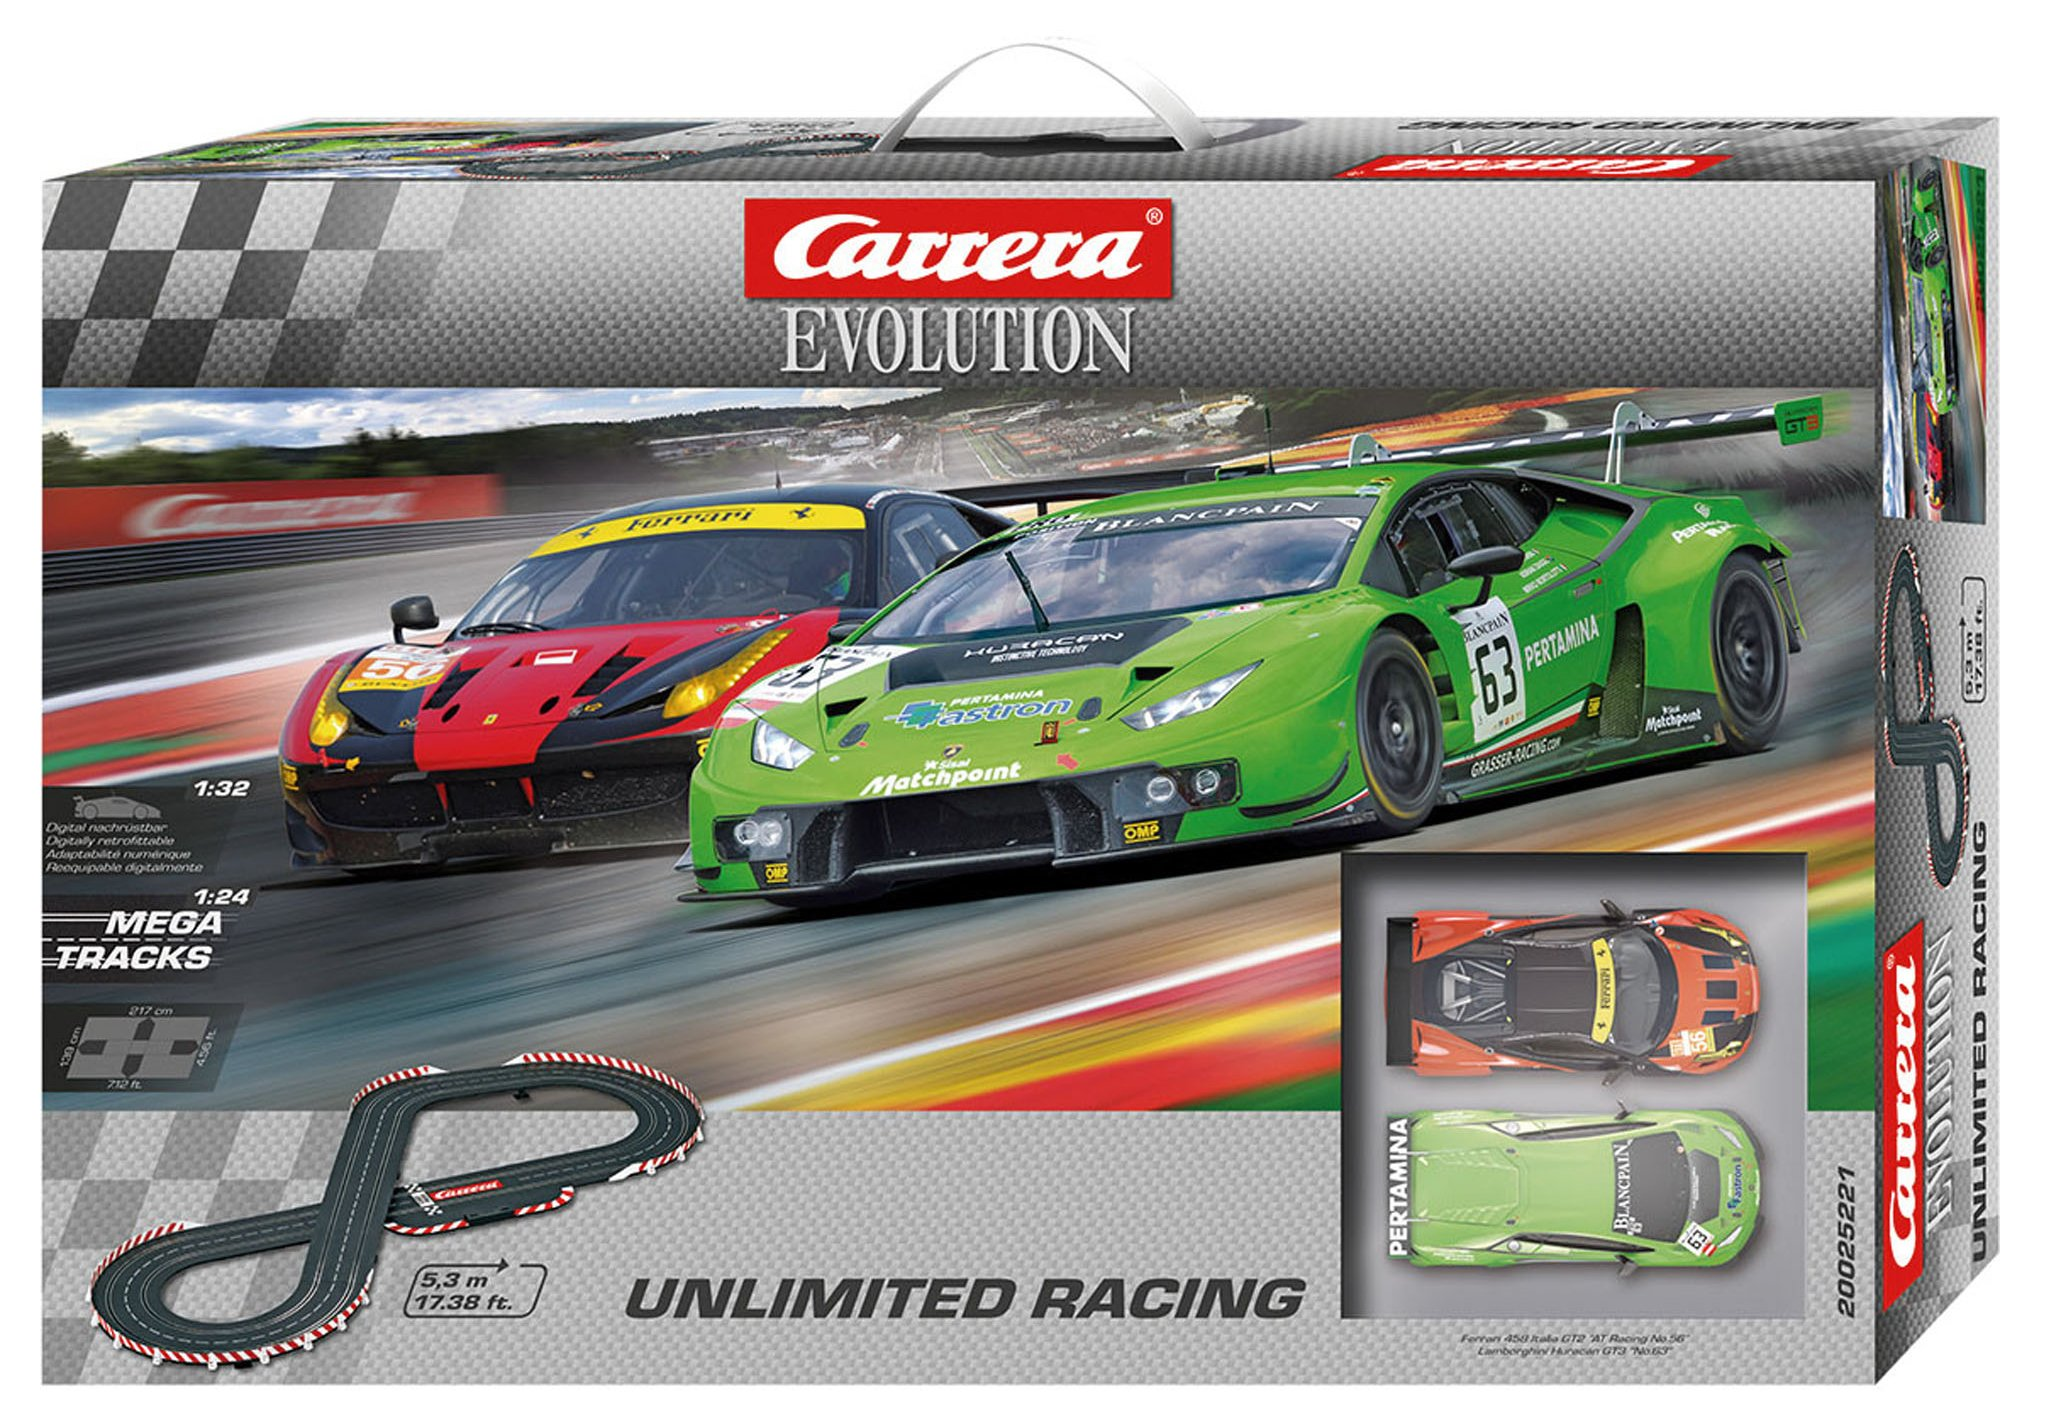 Carrera Evolution 25221 Unlimited Racing by Carrera (Image #5)